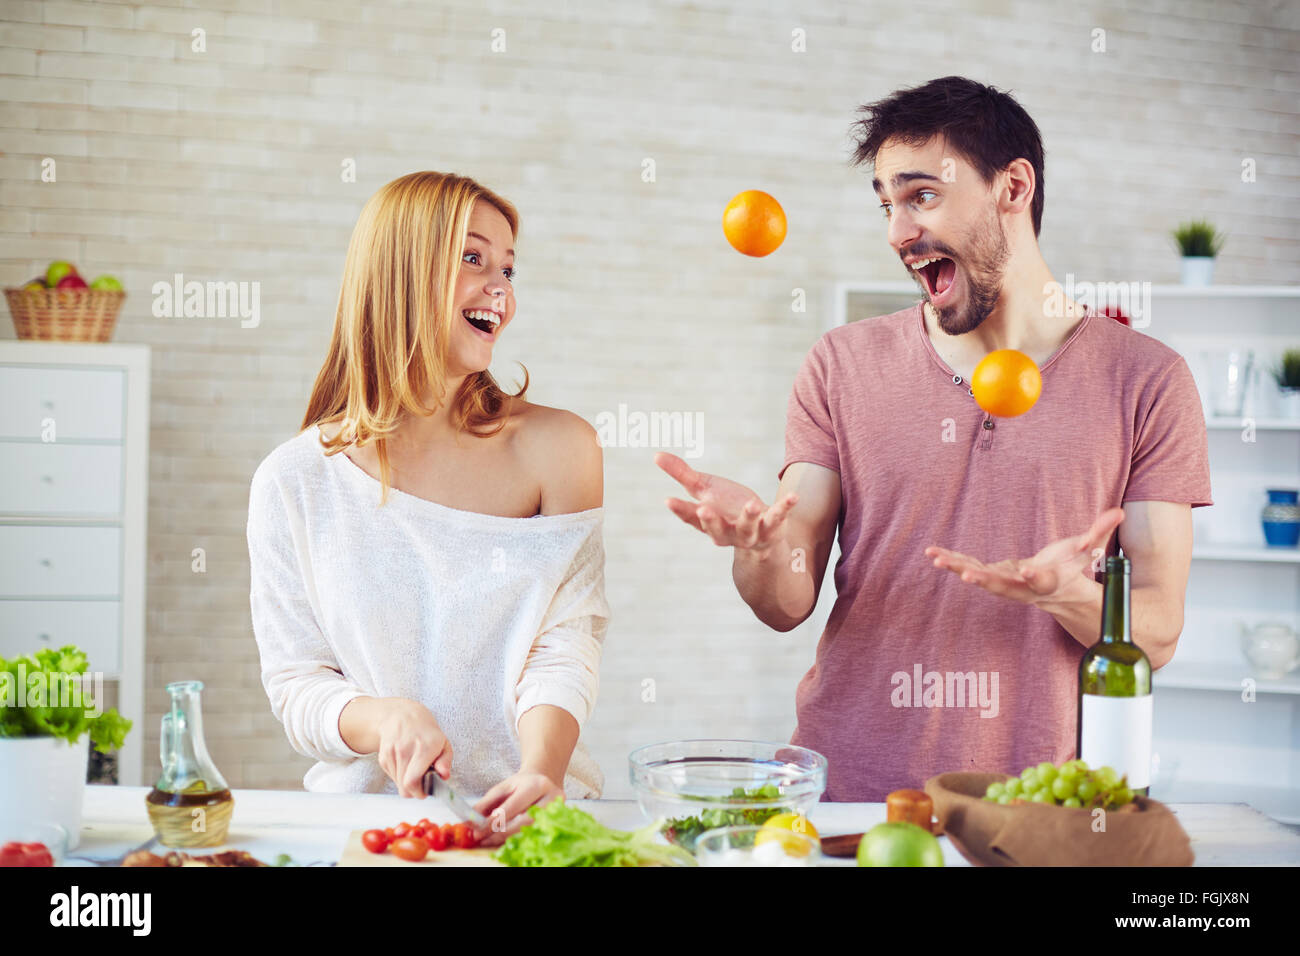 Playful young man juggling citrus fruits with his amazed wife cooking near by - Stock Image